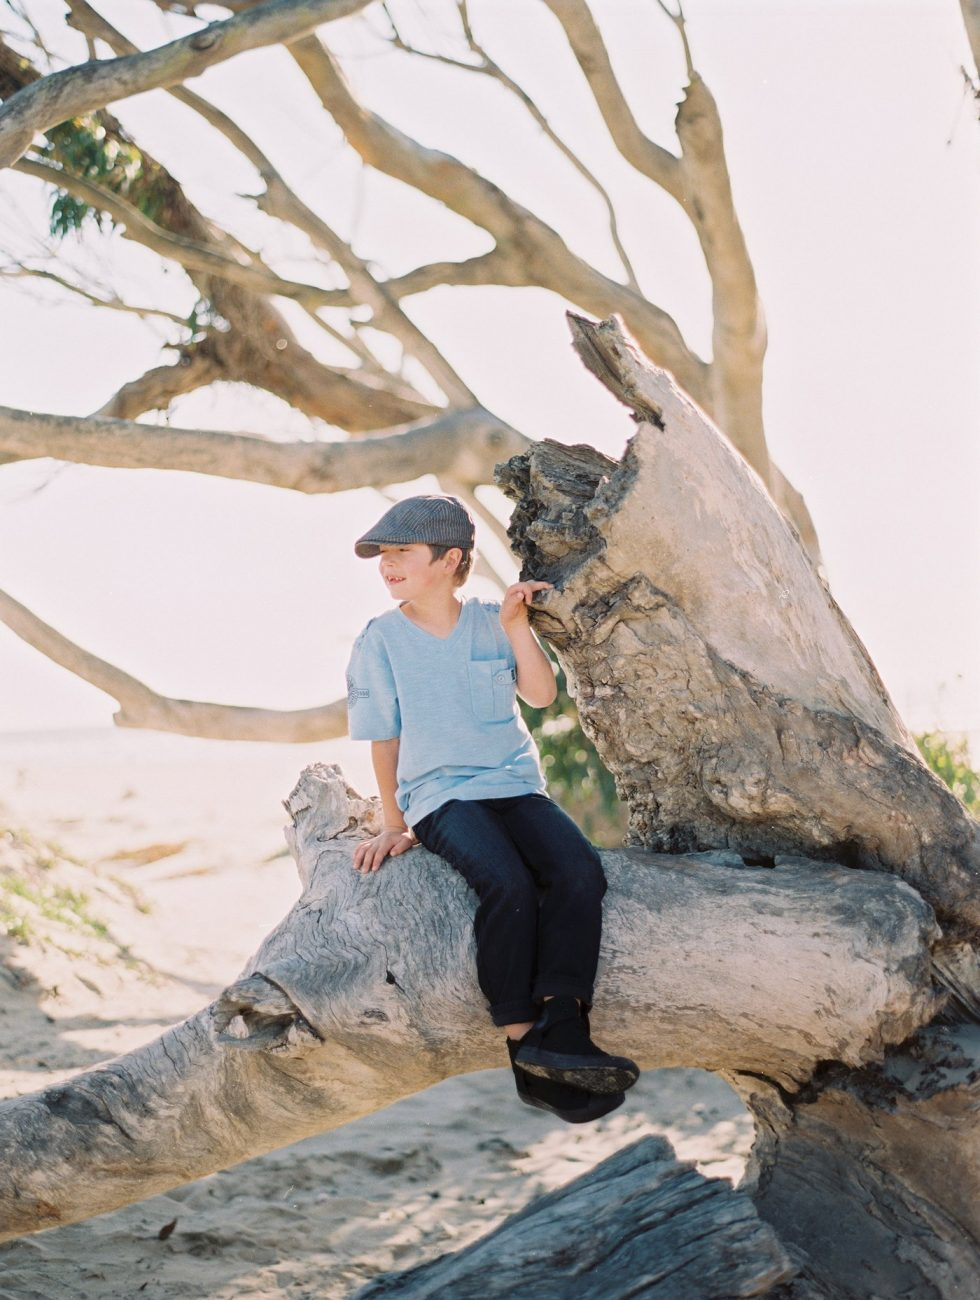 Little boy sitting on tree